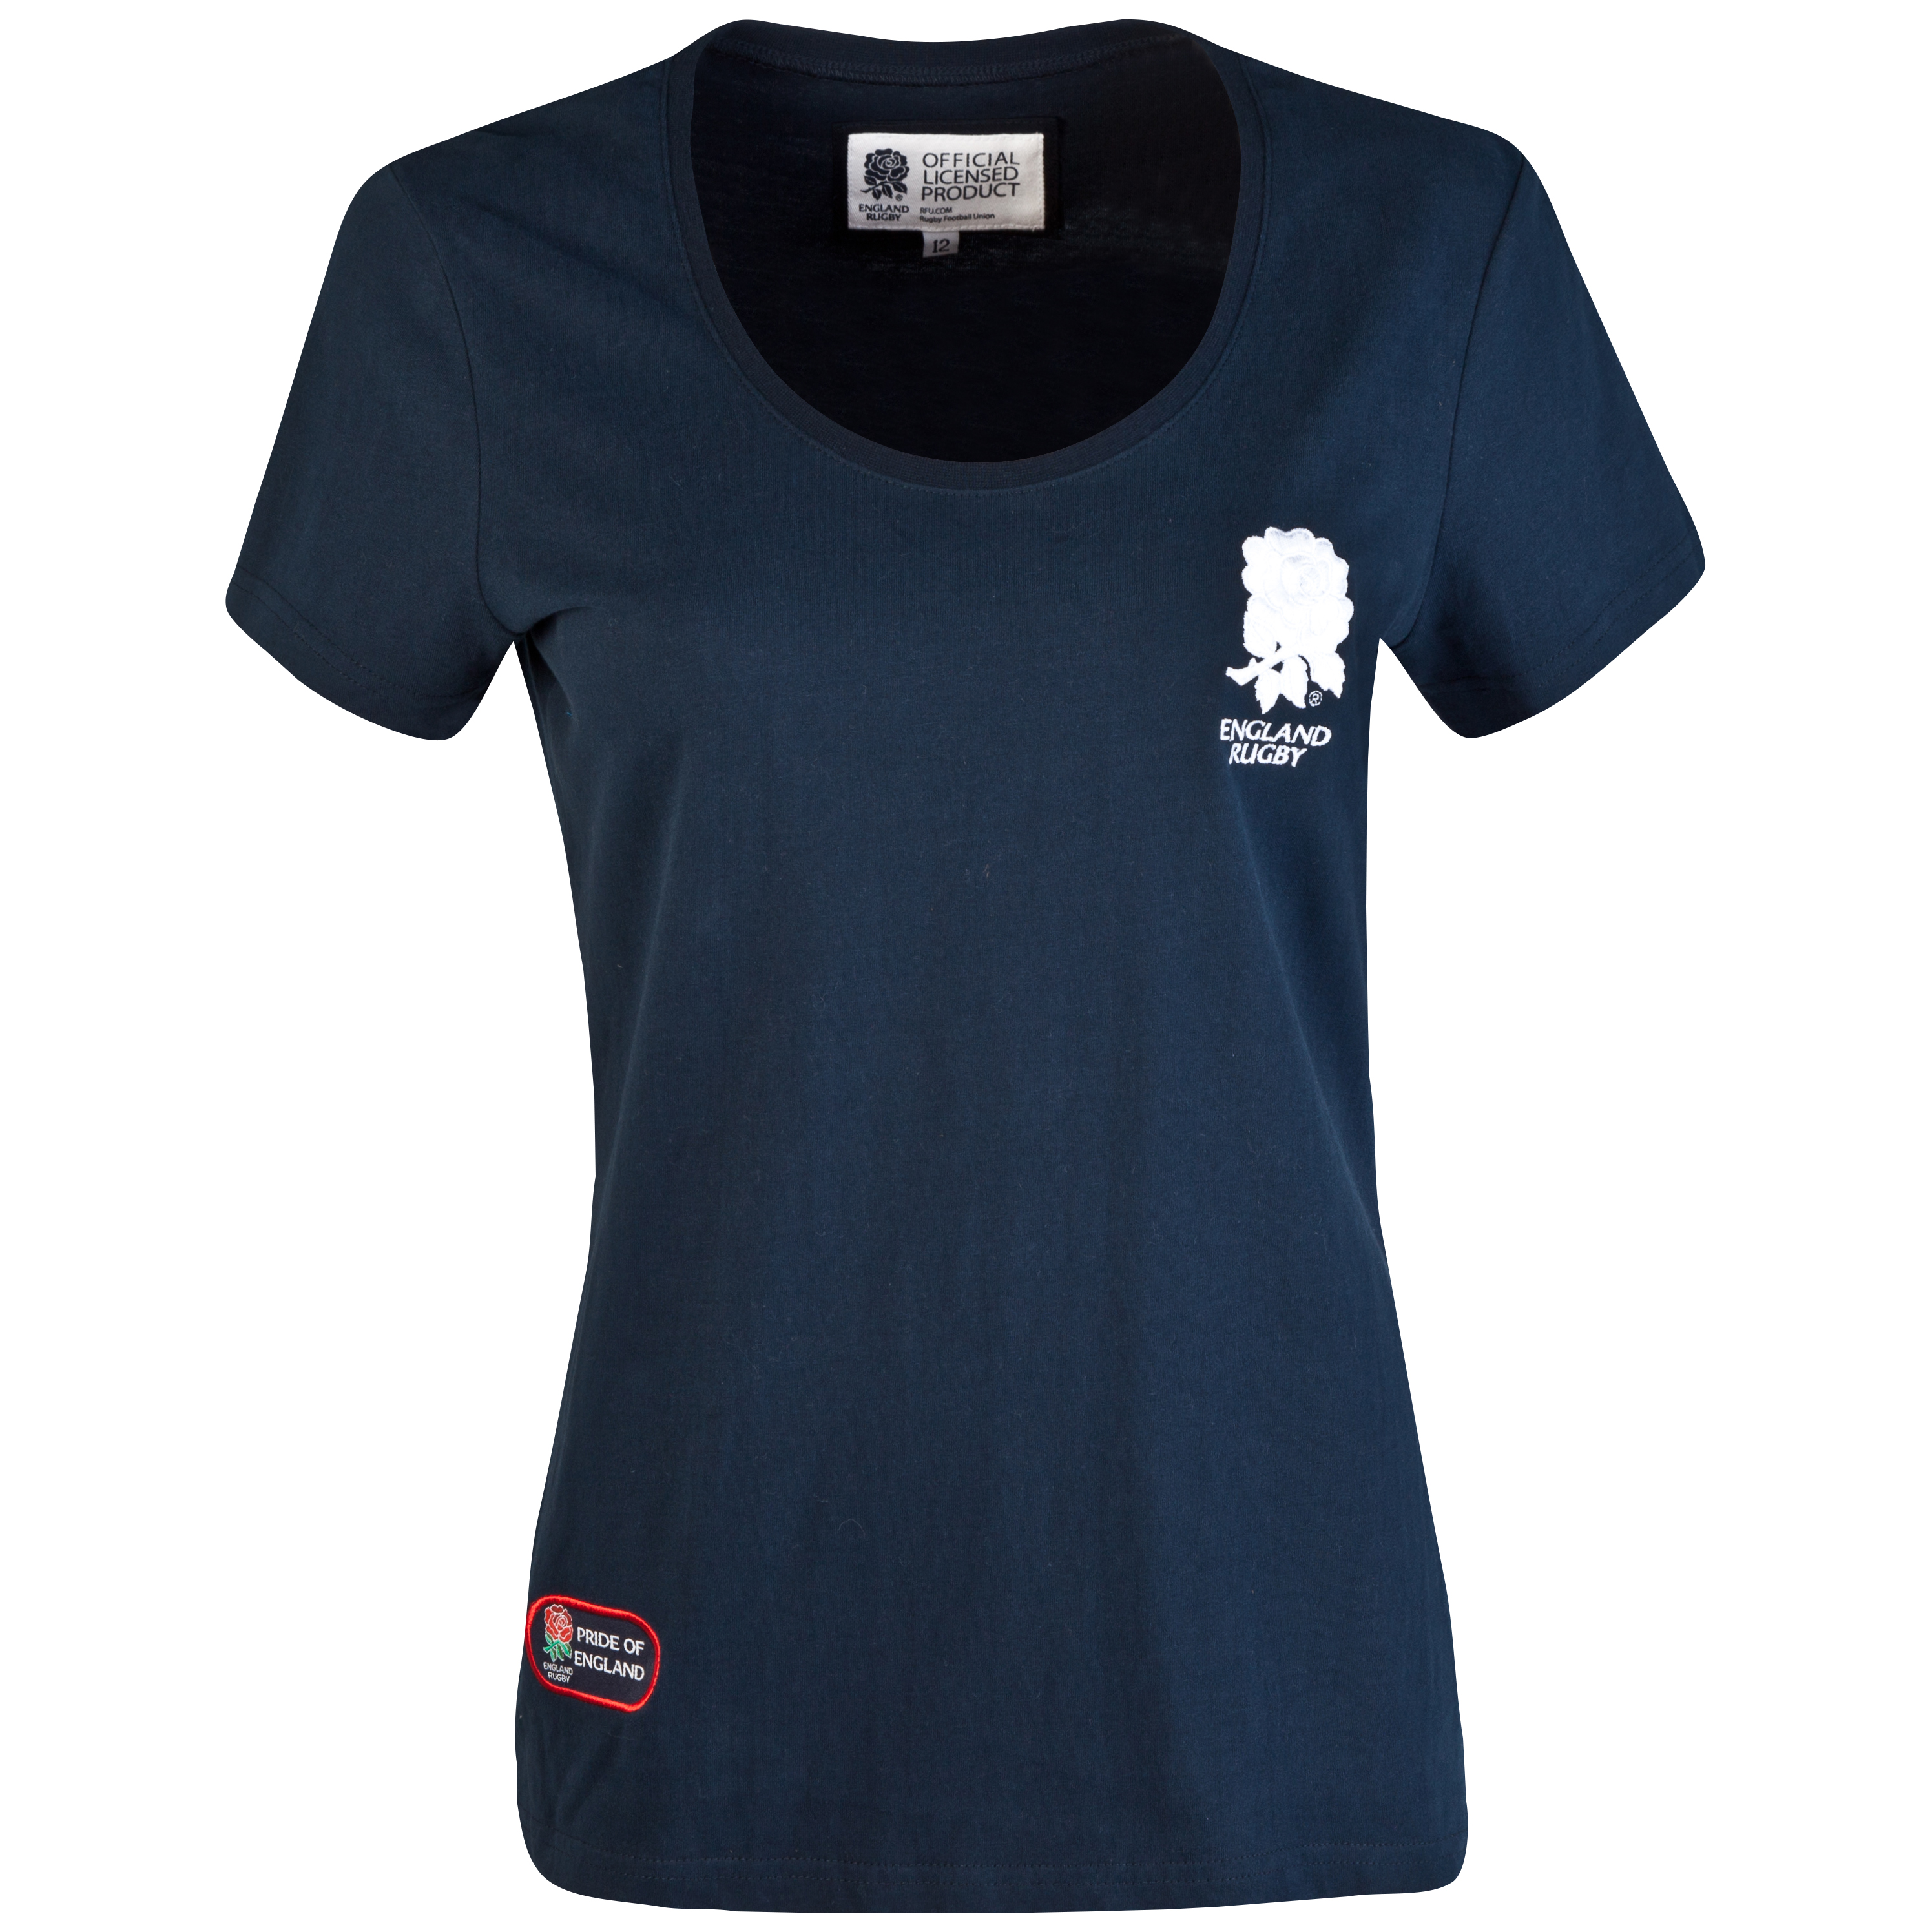 England Rugby Classic Collection Rose T-Shirt  - Navy - Womens